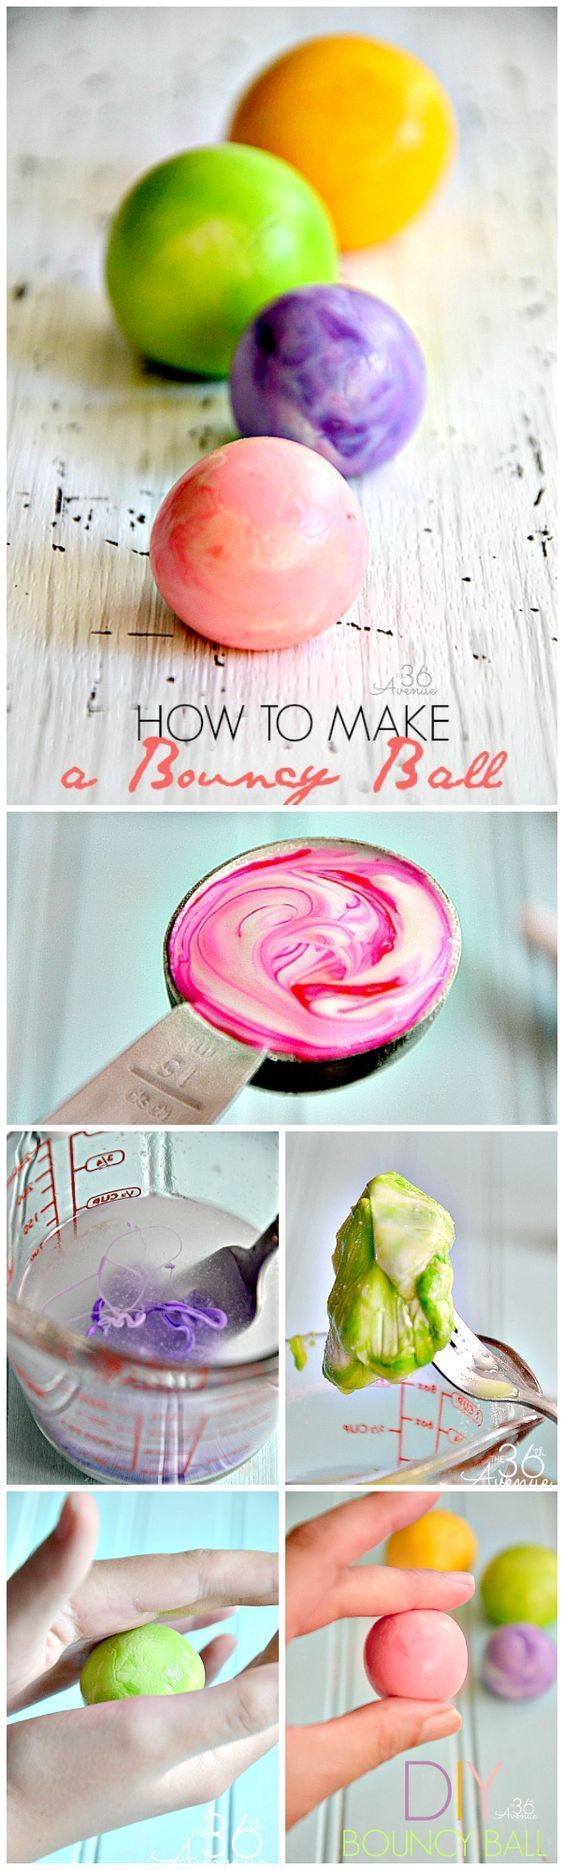 how to make ball in class